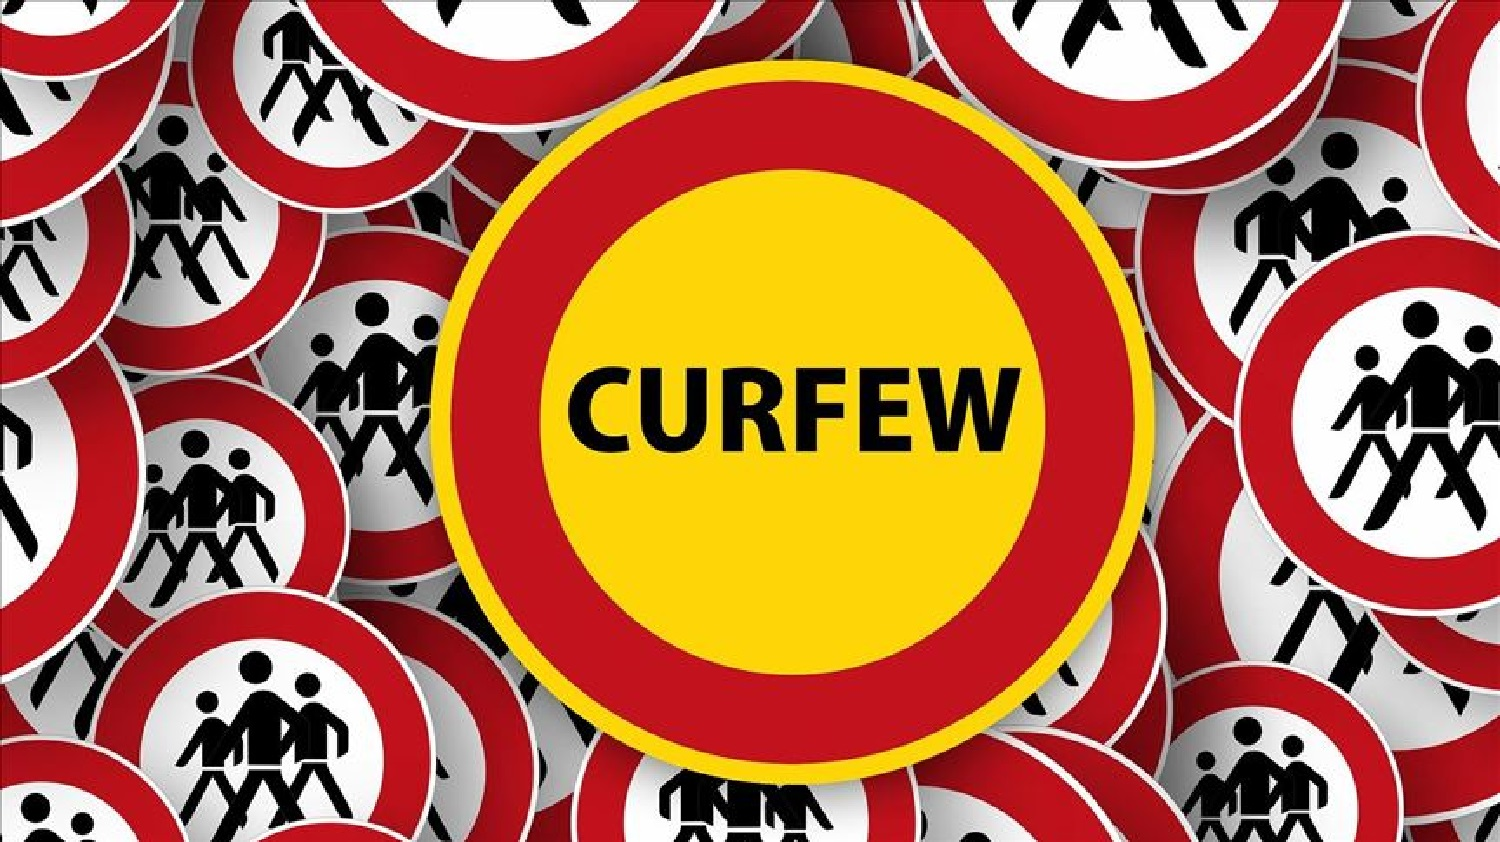 COVID-19: Curfew now 8 pm to 5 am in Oyo